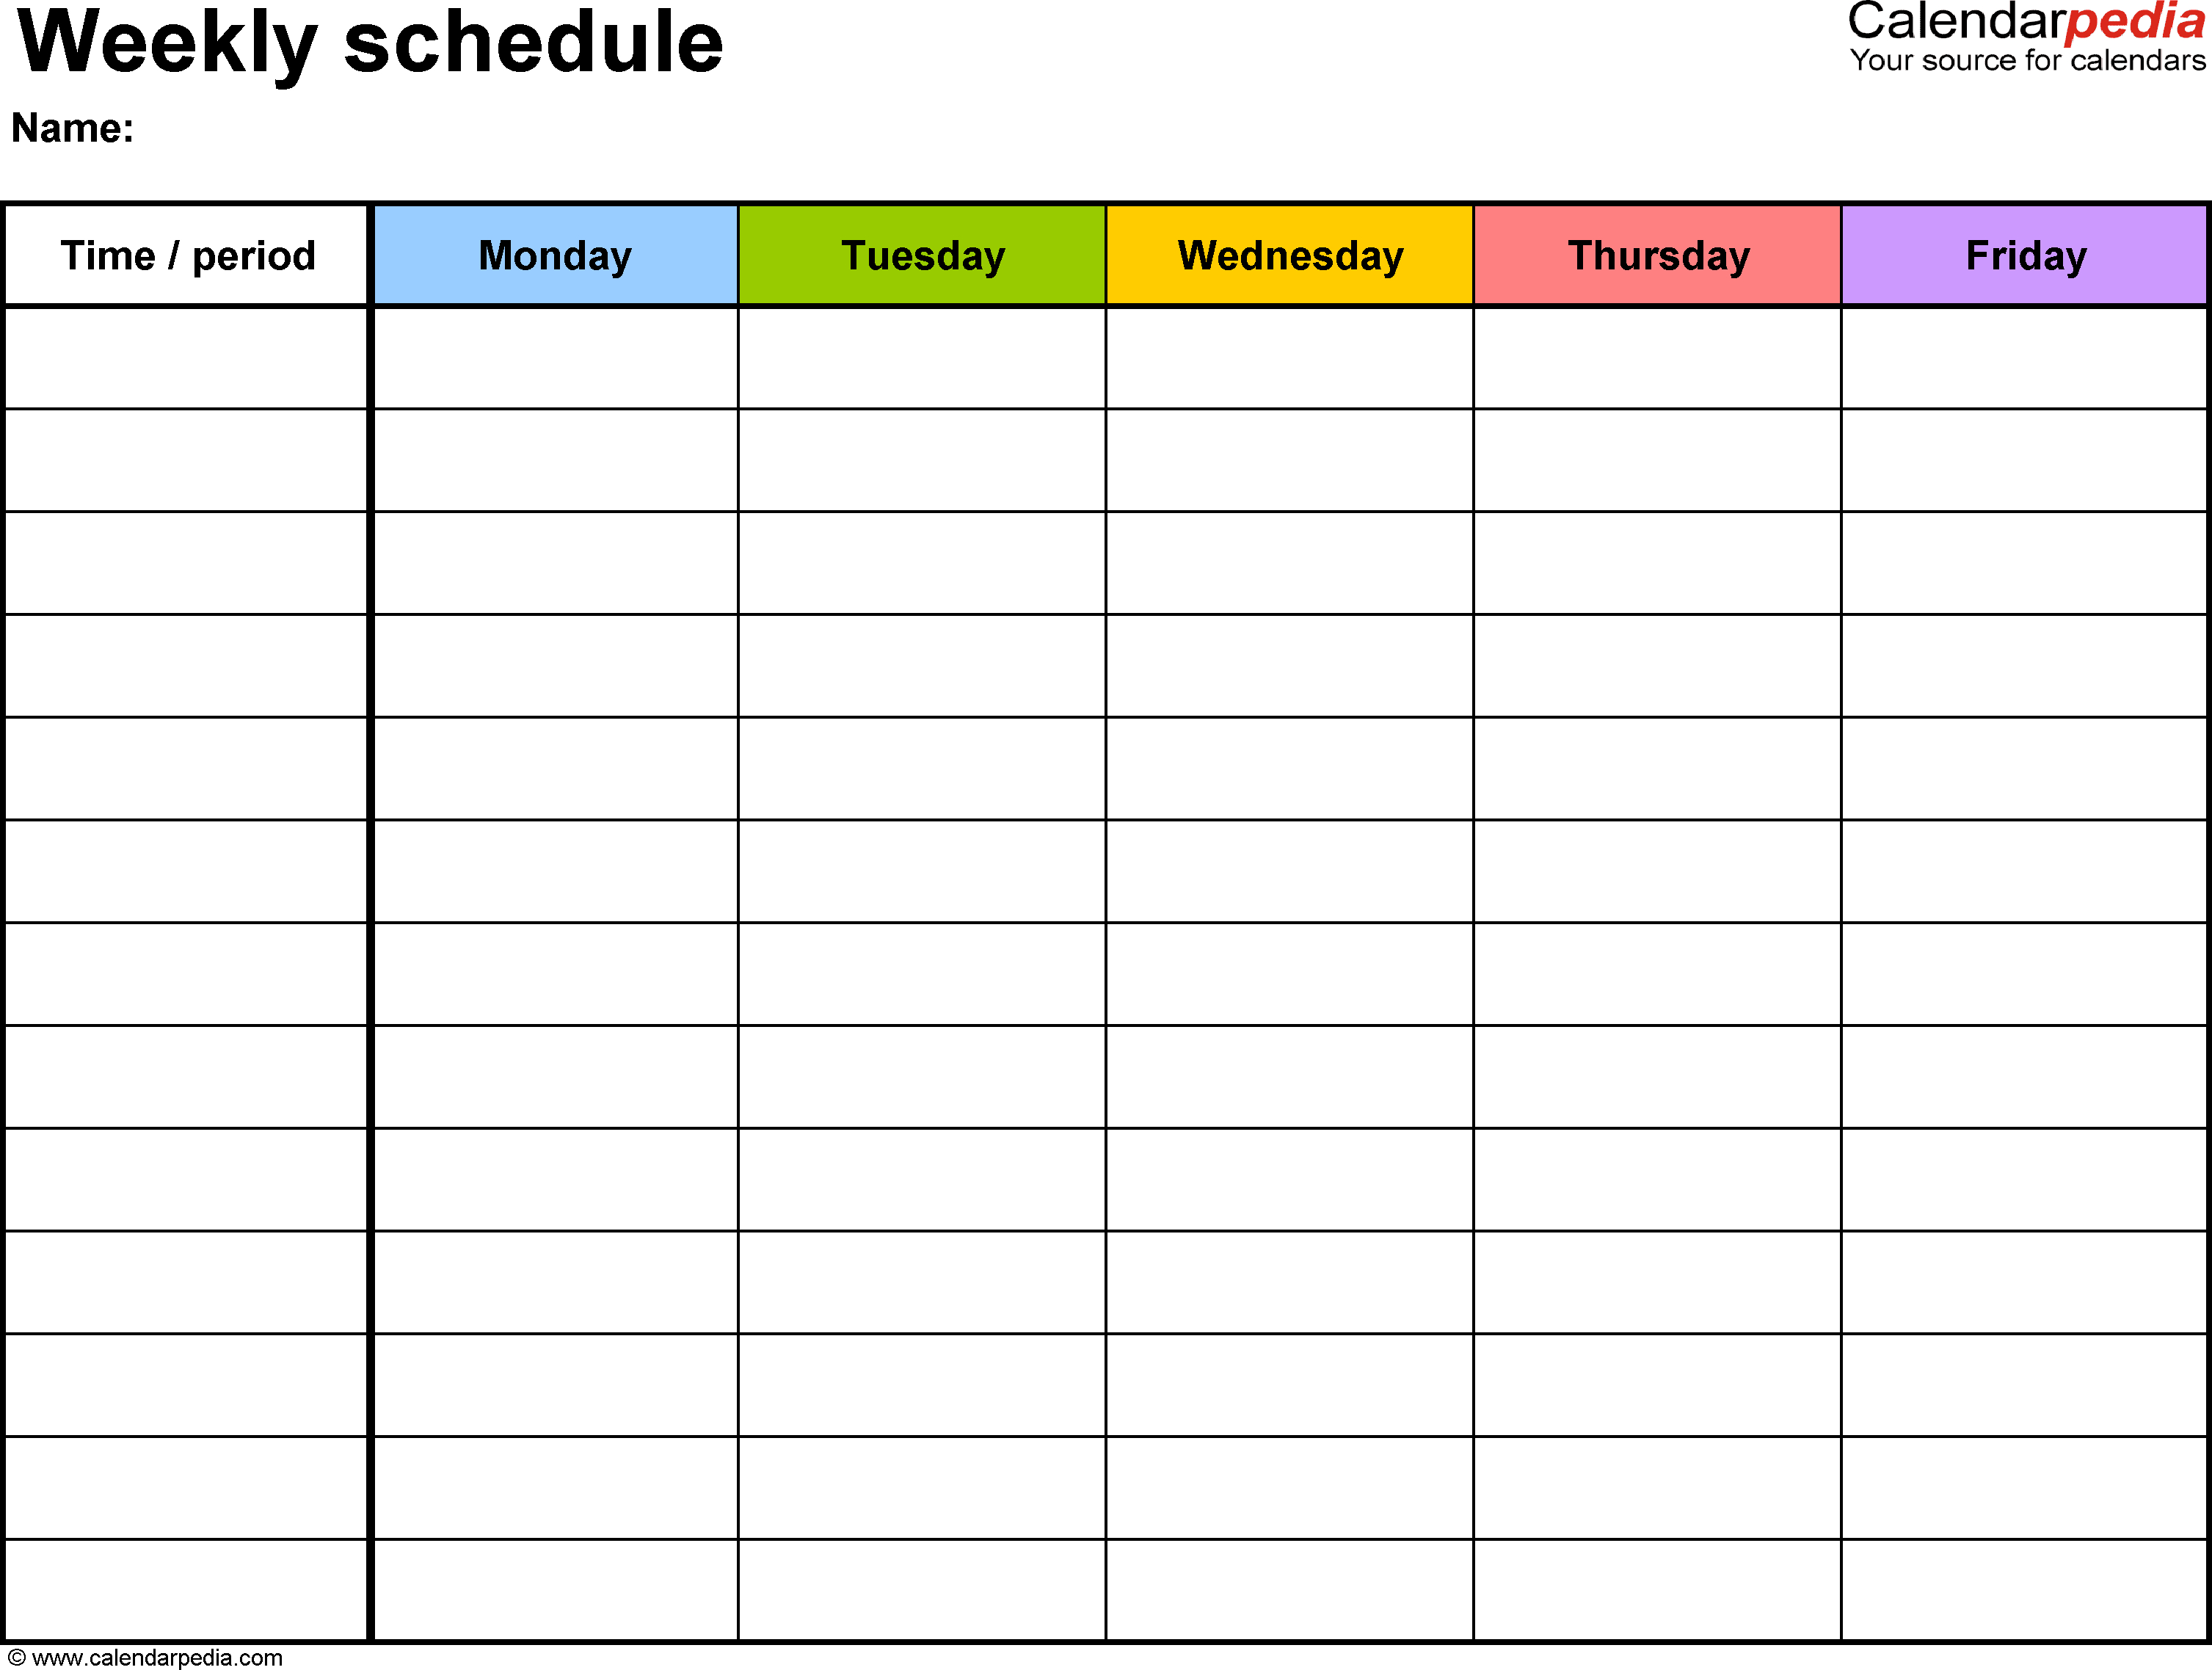 Free Weekly Schedule Templates For Word - 18 Templates with 7 Day Calendar Template Free